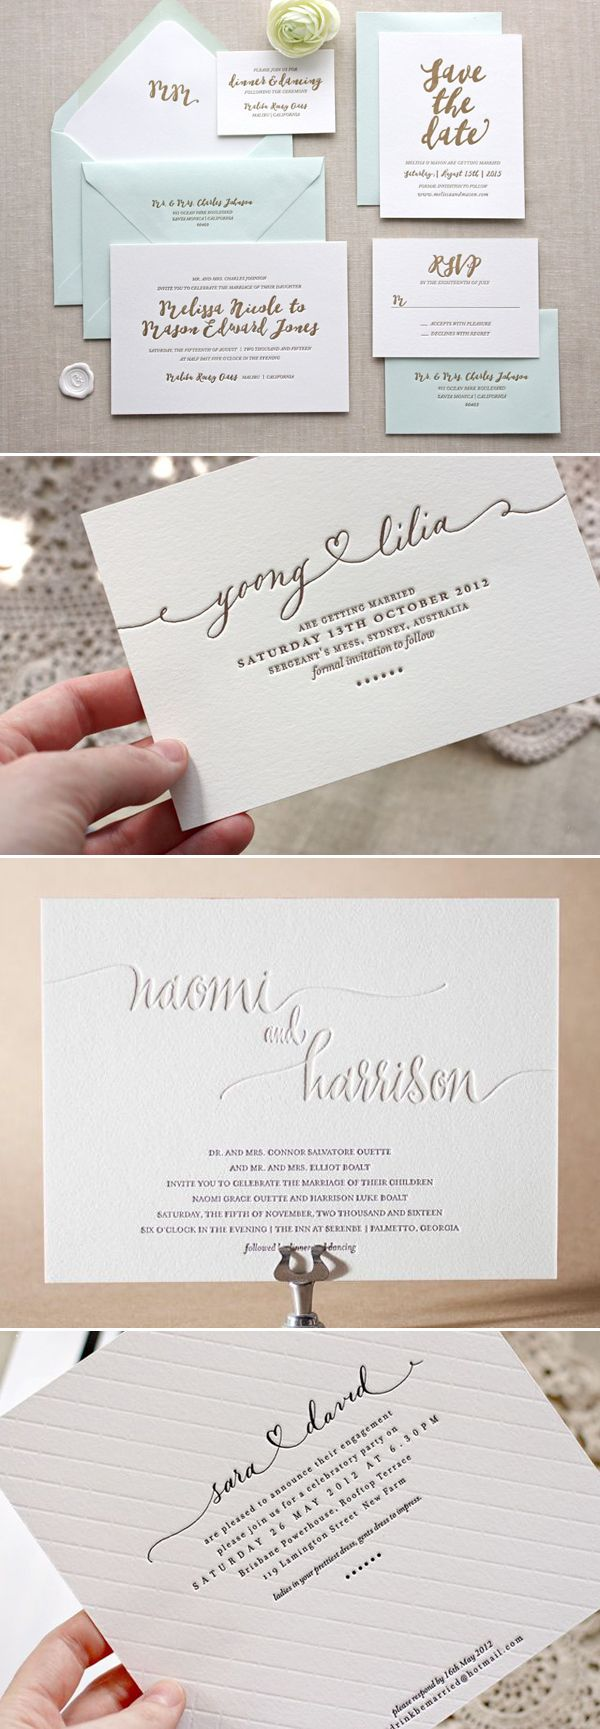 how to emboss wedding invitations diy%0A Bride to Be Reading   Letterpress wedding invitations  Deer Pearl Flowers    www